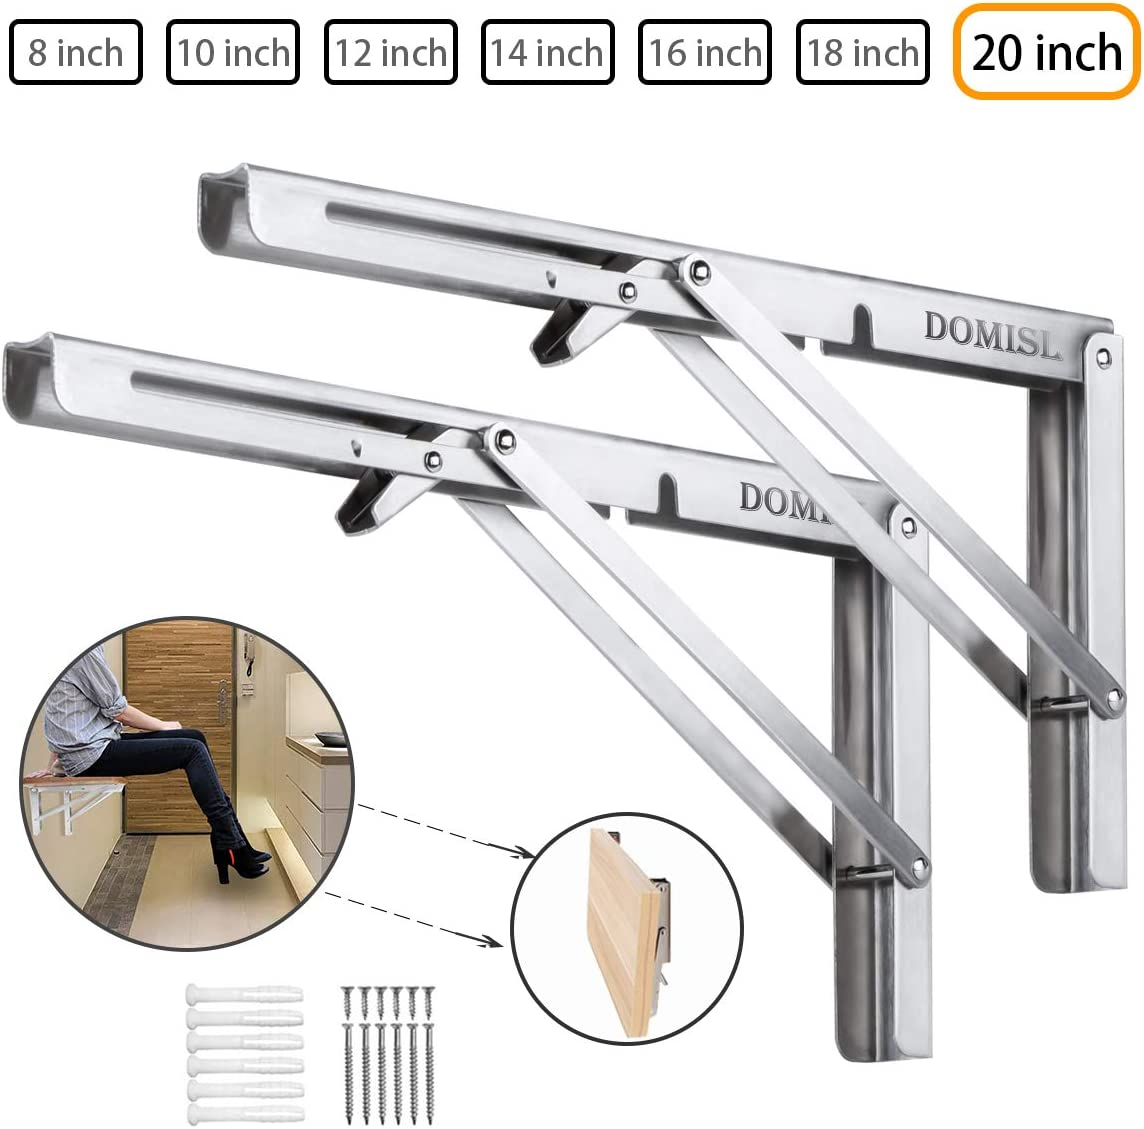 Folding Shelf Brackets 20 Inch , Heavy Duty Stainless Steel Collapsible Wall Mounted Shelf for Table Work Bench, DIY Bracket, Space Saving, Max Load 400lb , Pack of 2 with Install Screws